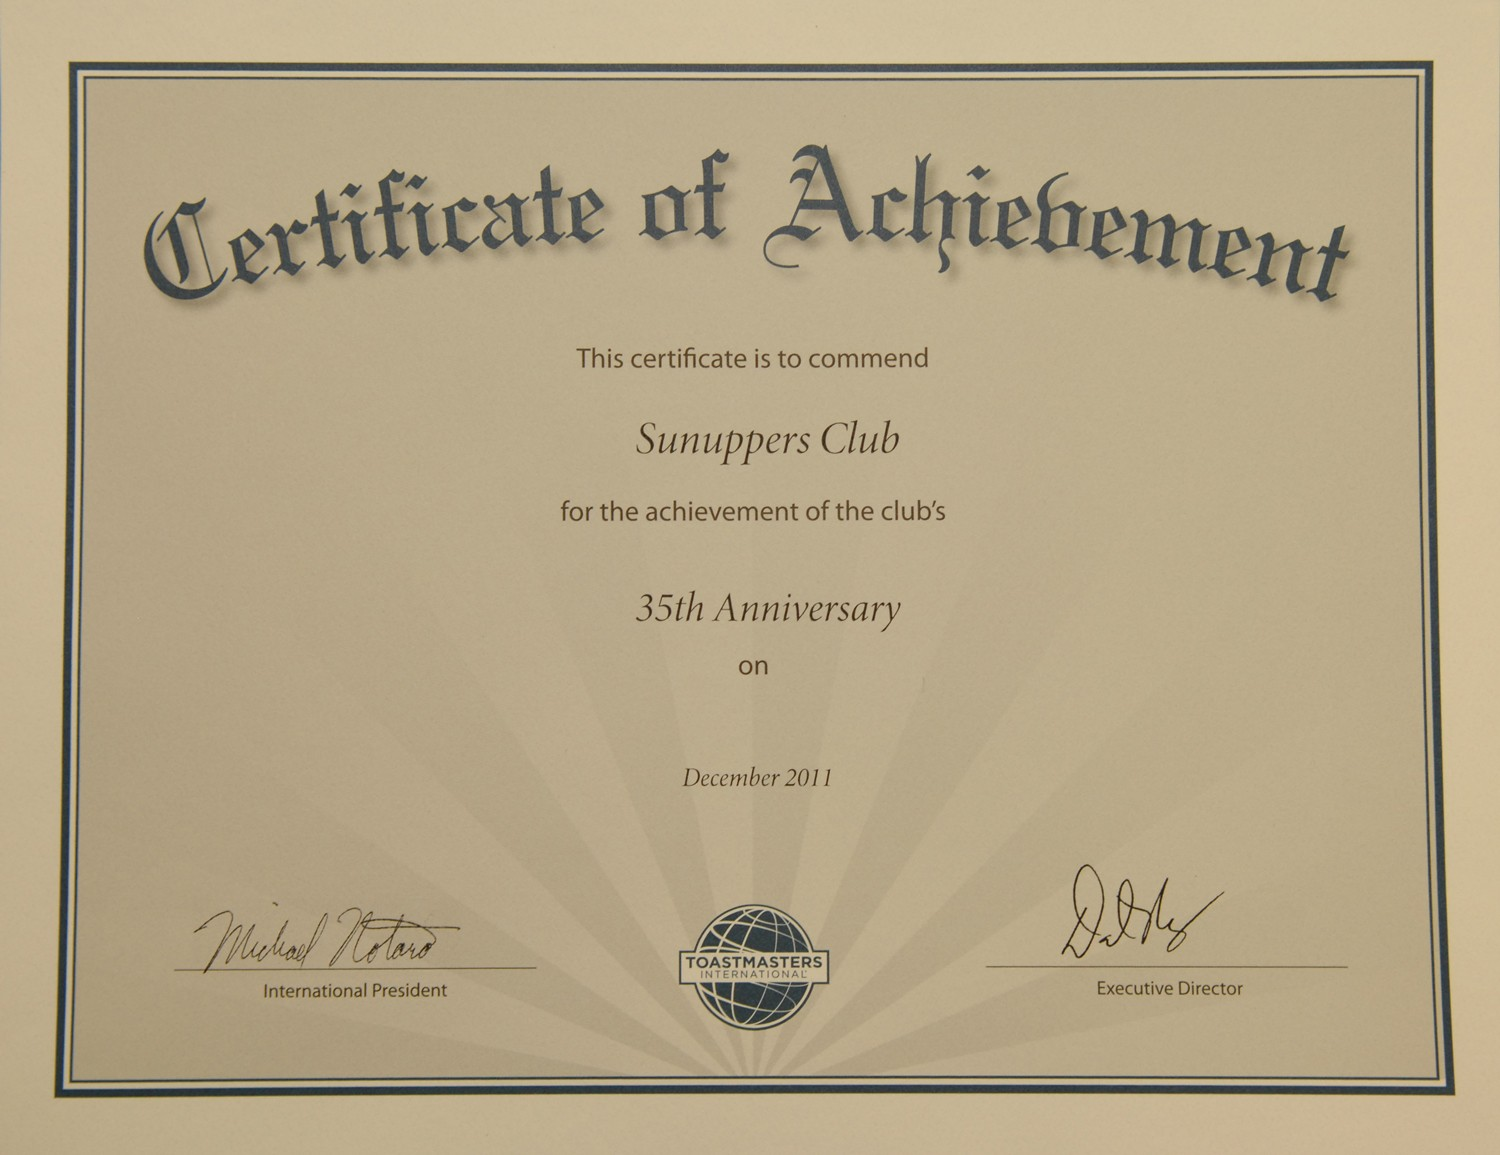 Comfortable toastmasters certificate of appreciation template images toastmasters certificate of appreciation template images yelopaper Images